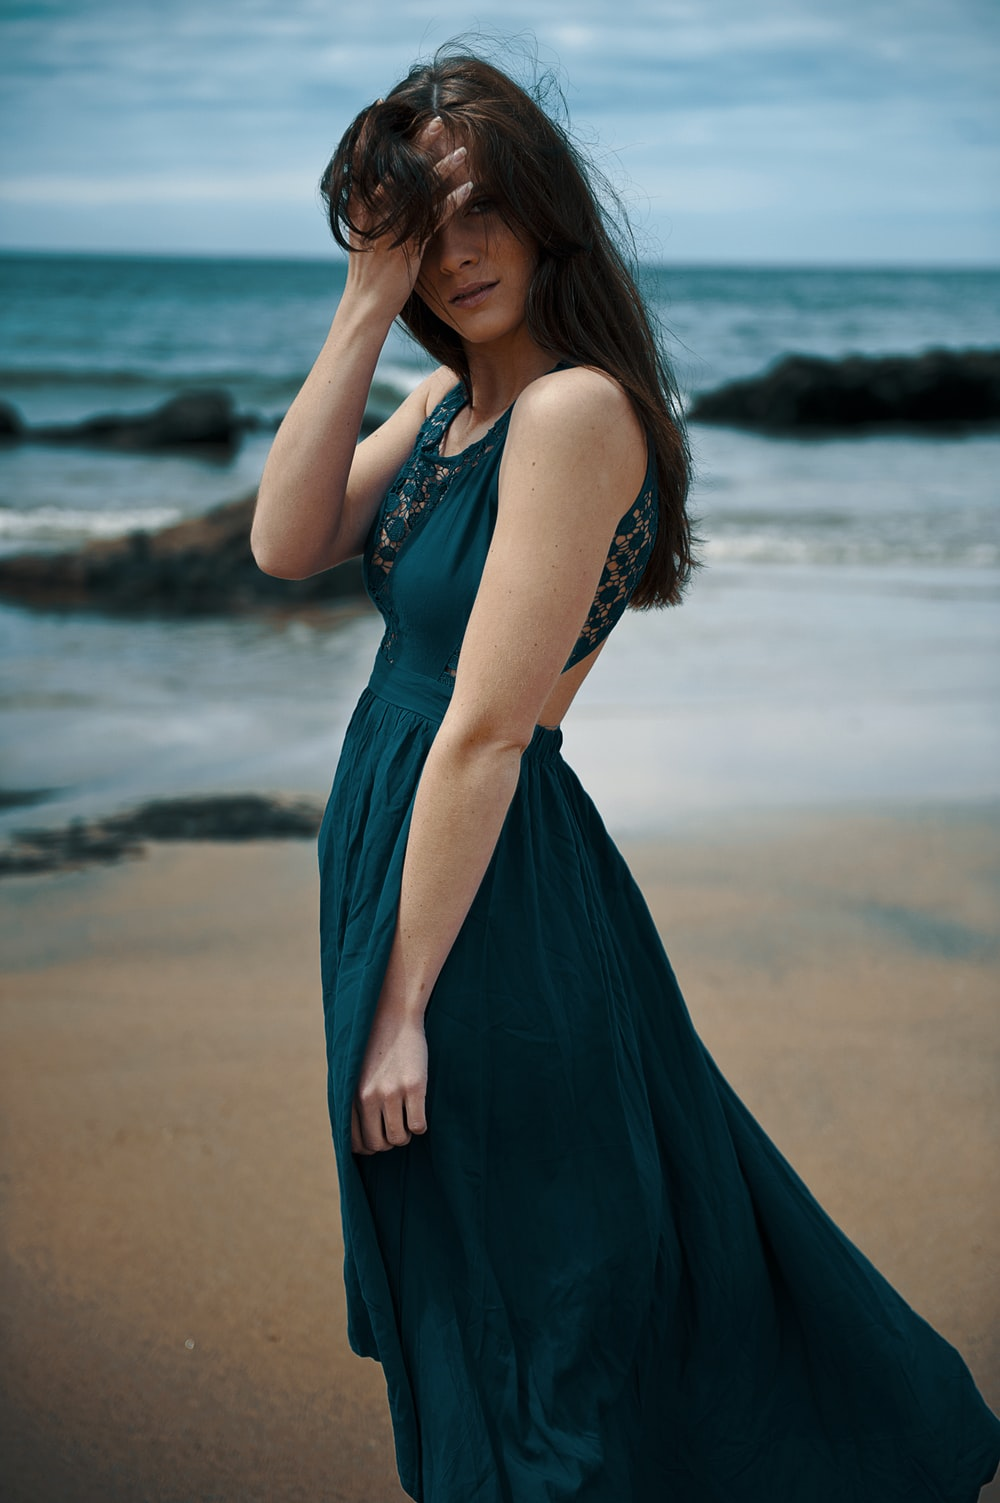 woman in blue sleeveless dress standing on beach during daytime